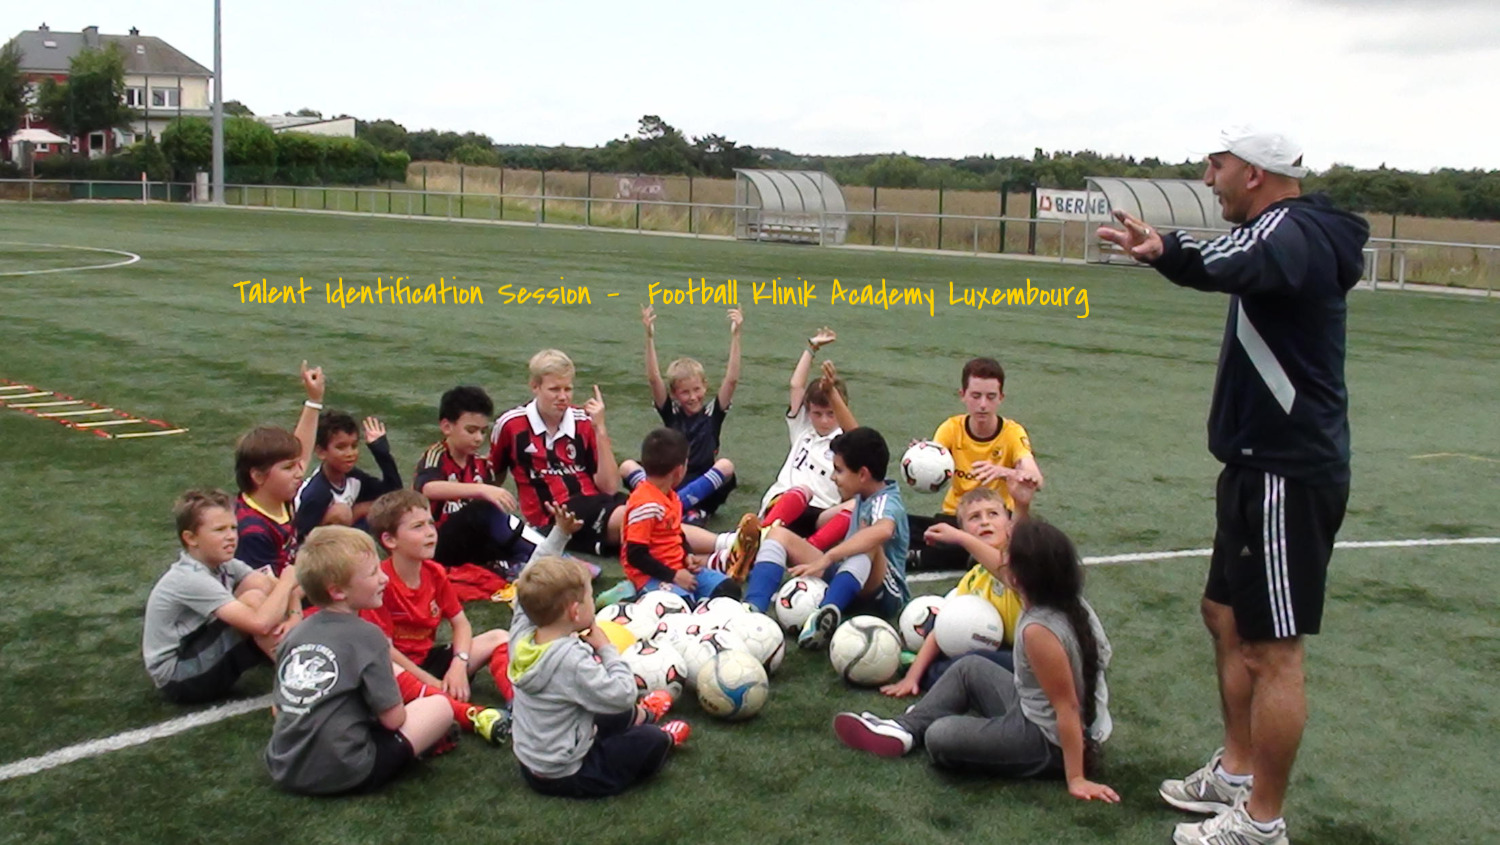 Talent Identification  Session -  Football Klinik Academy Luxembourg